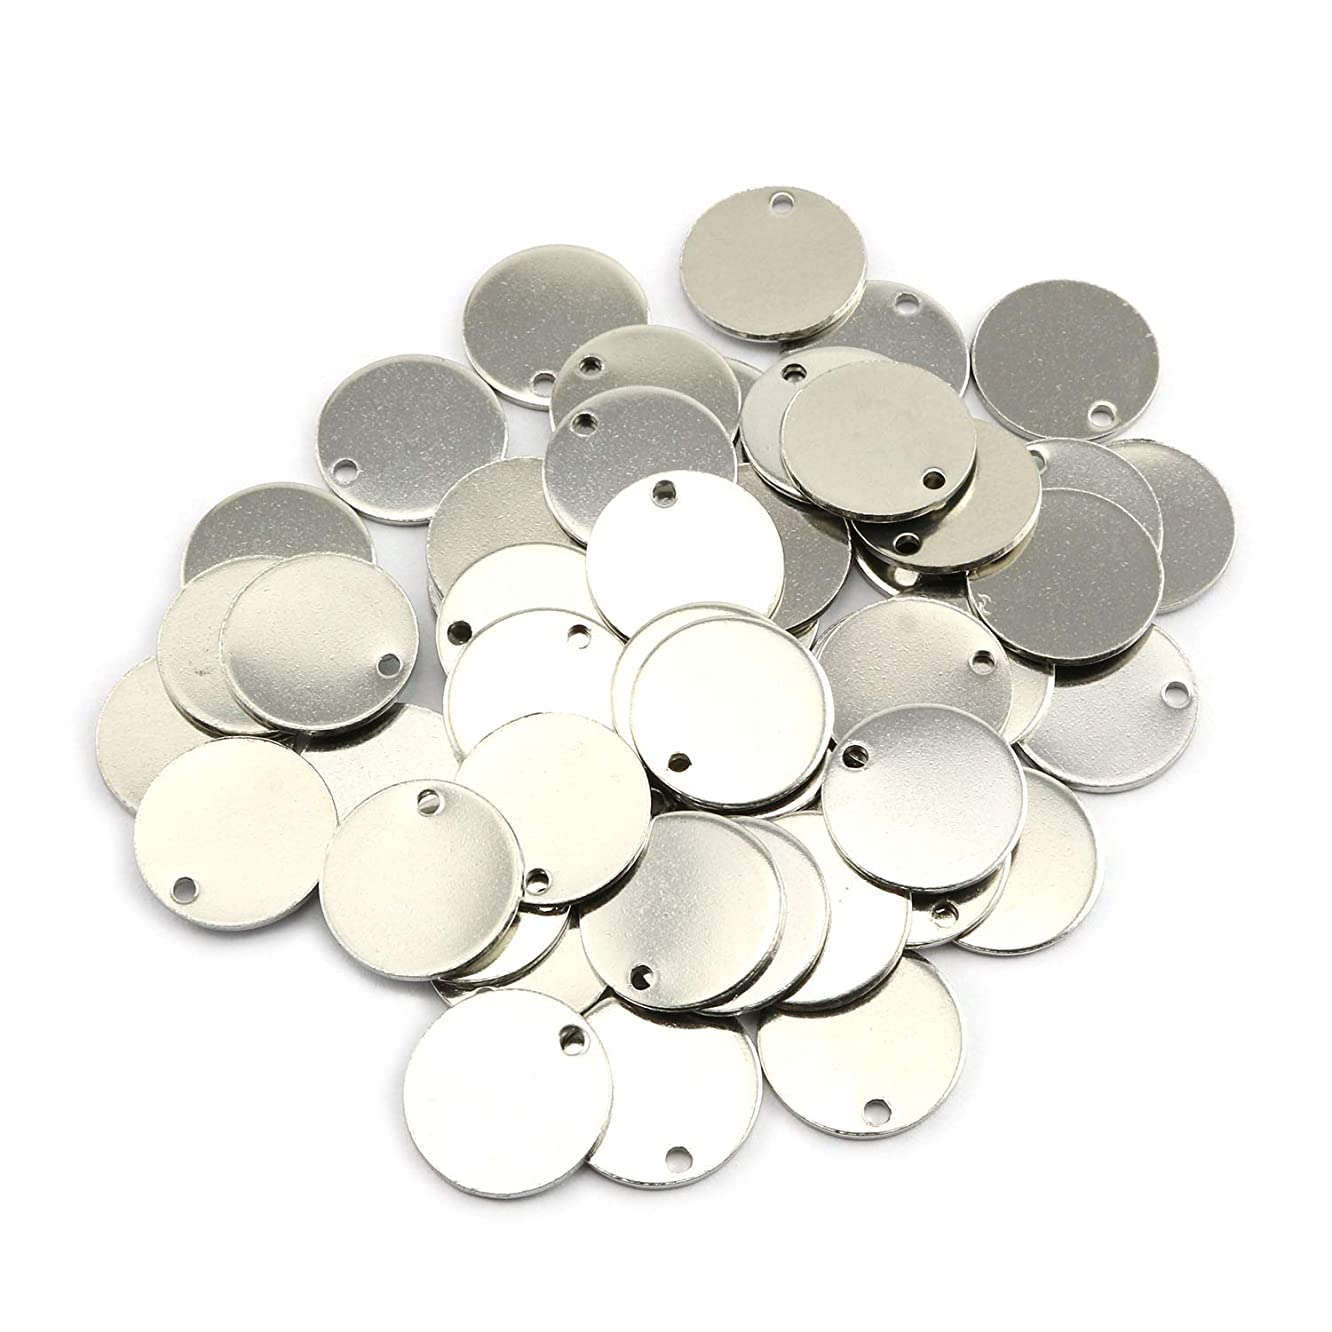 Partstock 50PCS Stainless Steel Flat Round Pendant Stamping Tag Pendants Accessories for Earrings Bracelets DIY Jewelry Making 15mm